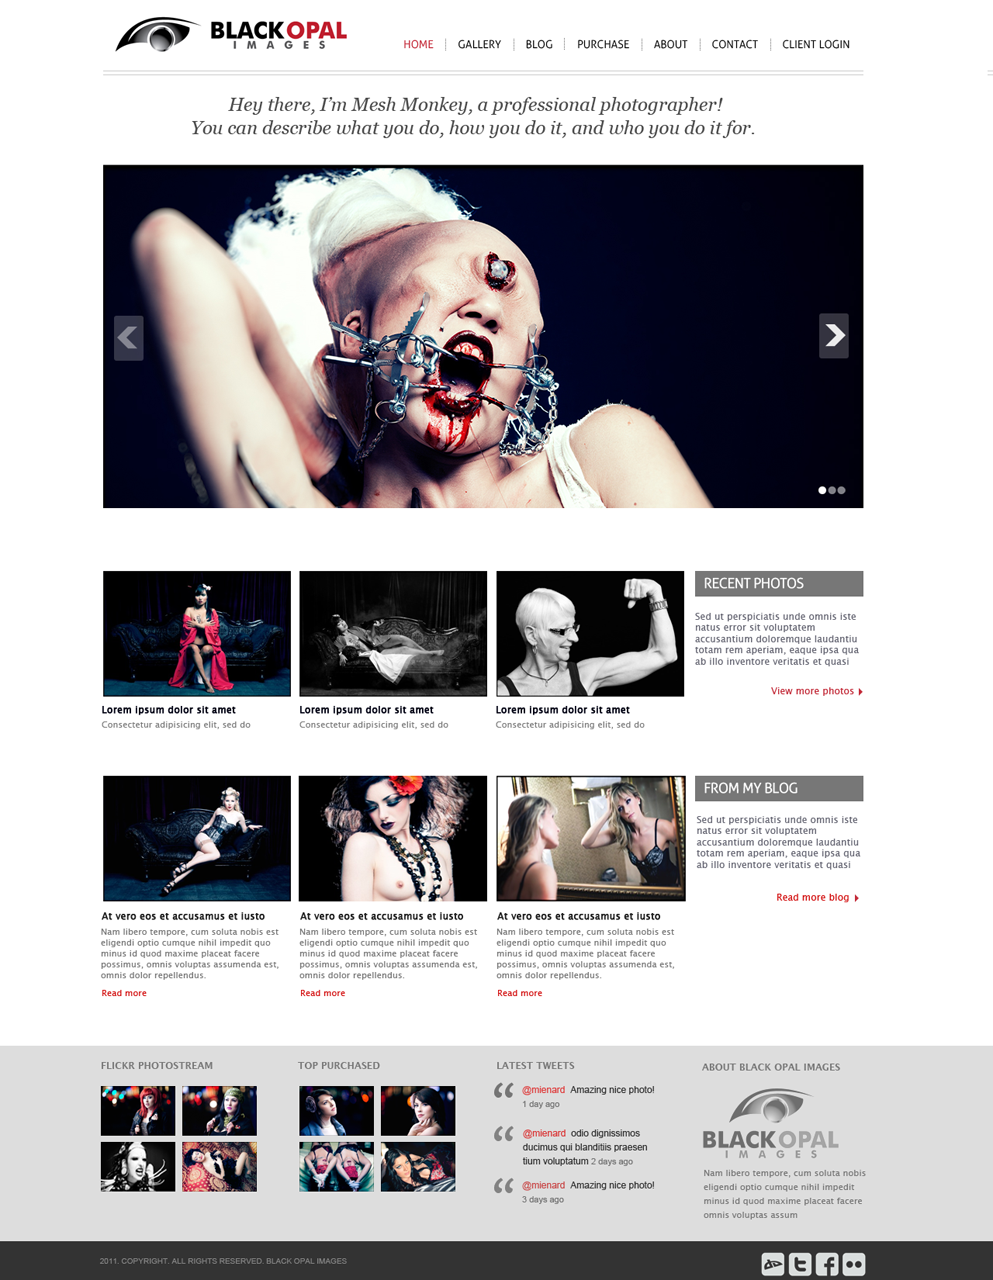 Web Page Design by themesmile - Entry No. 31 in the Web Page Design Contest New Web Page Design for Black Opal Images.